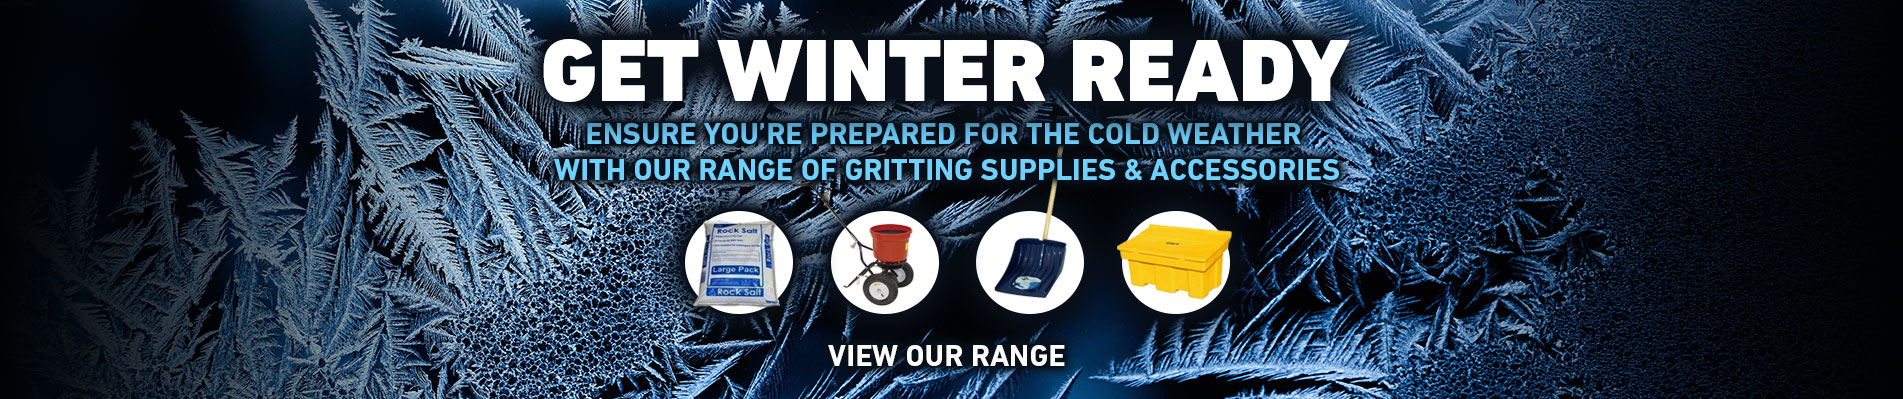 Get Winter Ready - Ensure you're prepared for the cold weather with our range of gritting supplies and accessories